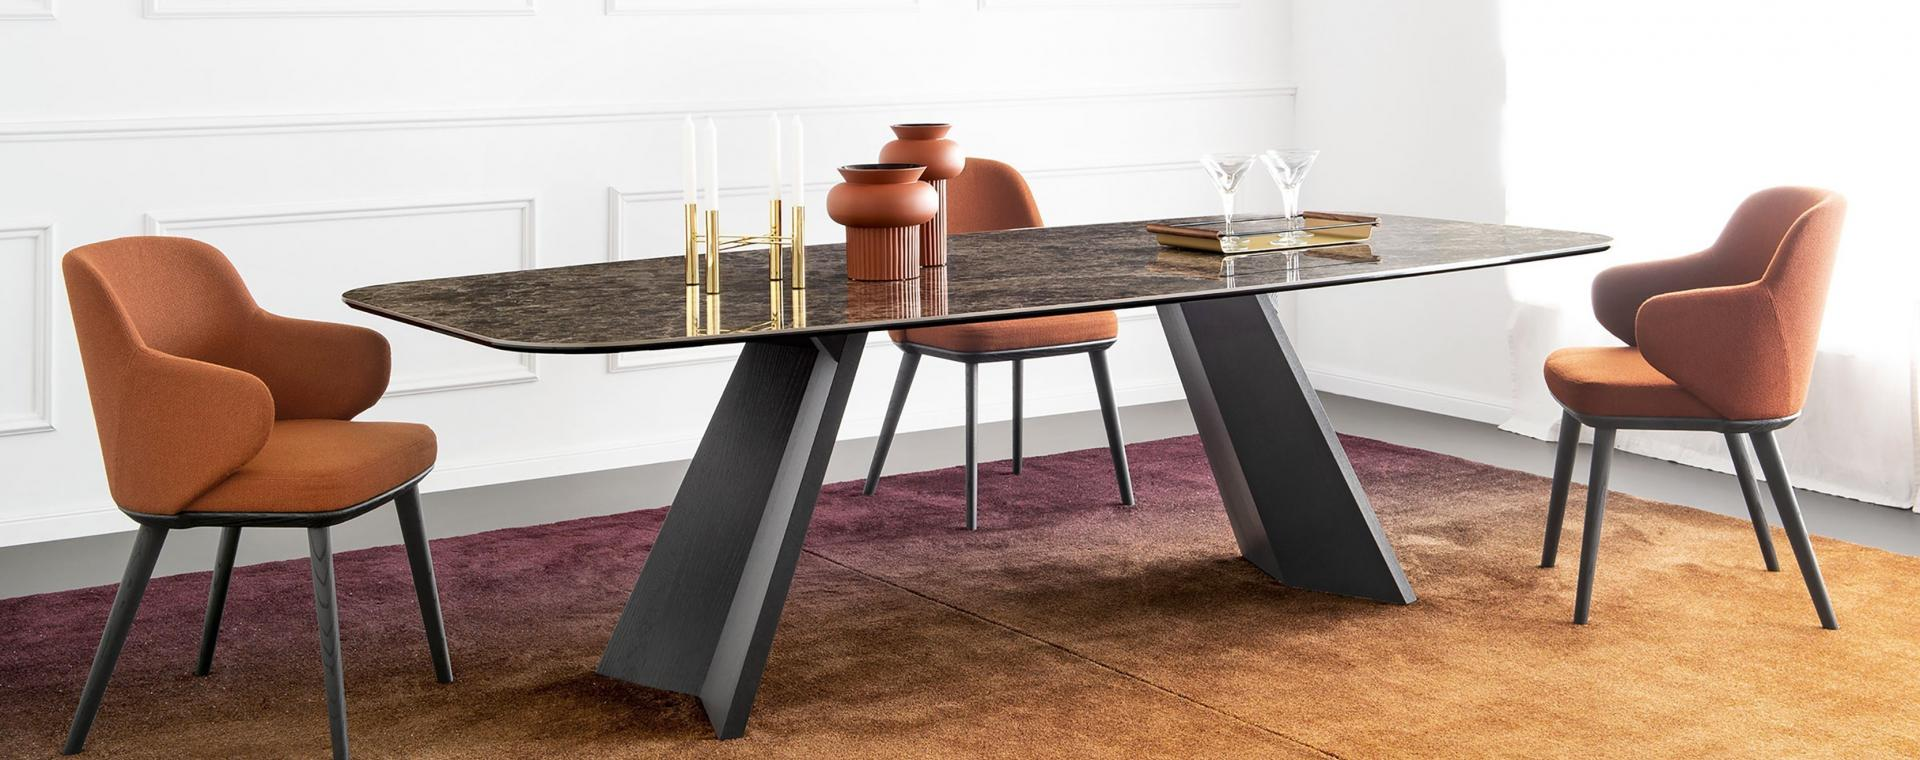 Calligaris dining table furniture takis angelides furnihome cyprus